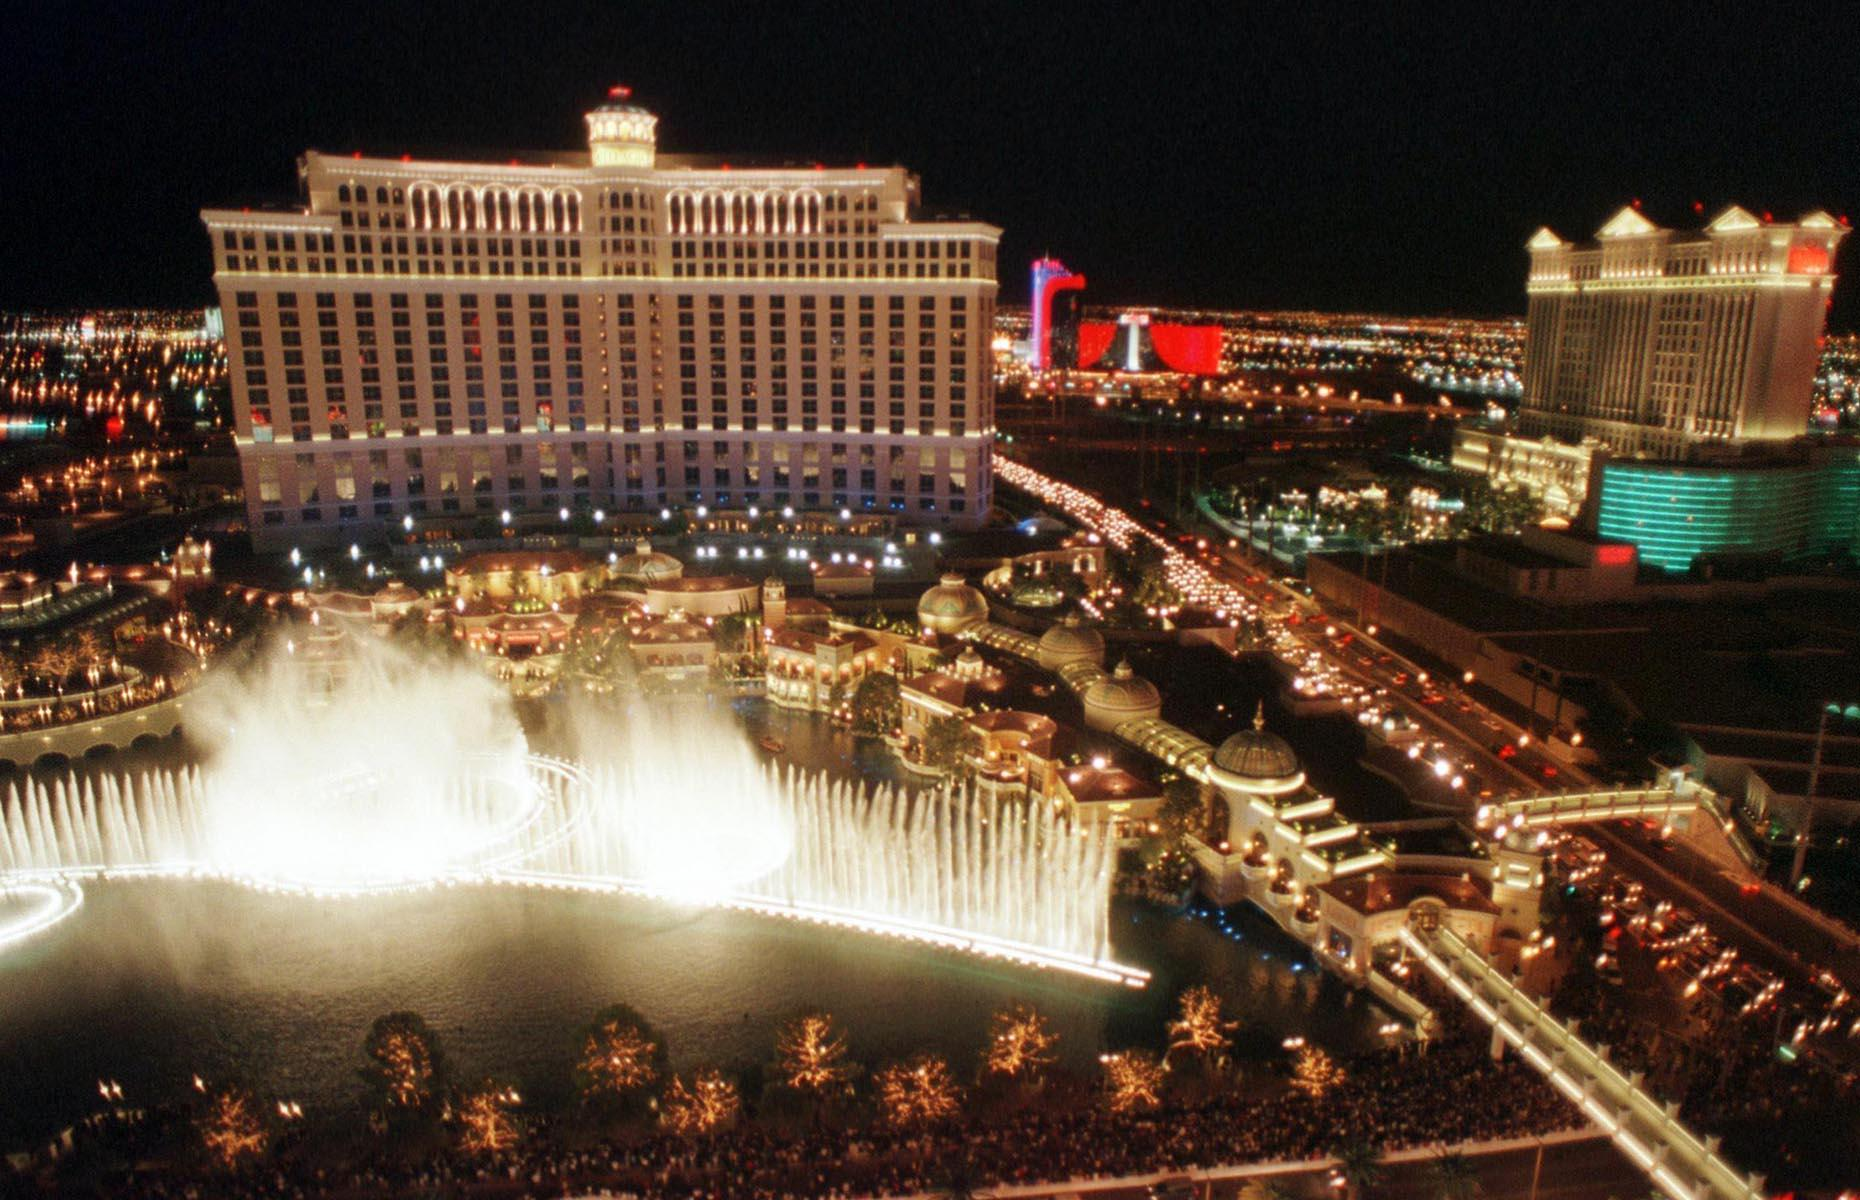 Slide 29 of 34: During Las Vegas' history there have been several hotels that have set the city on a new course and the Bellagio is one such hotel. Opened in 1998 (pictured here on opening night), the hotel and the Fountains of Bellagio, a choreographed water feature with performances set to light and music, were built on the site of the demolished Dunes. One of the most spectacular hotel-casinos to ever open on the Strip, it shifted the focus to luxury and helped create the image of modern Las Vegas with appearances in films like Ocean's Eleven and The Hangover.